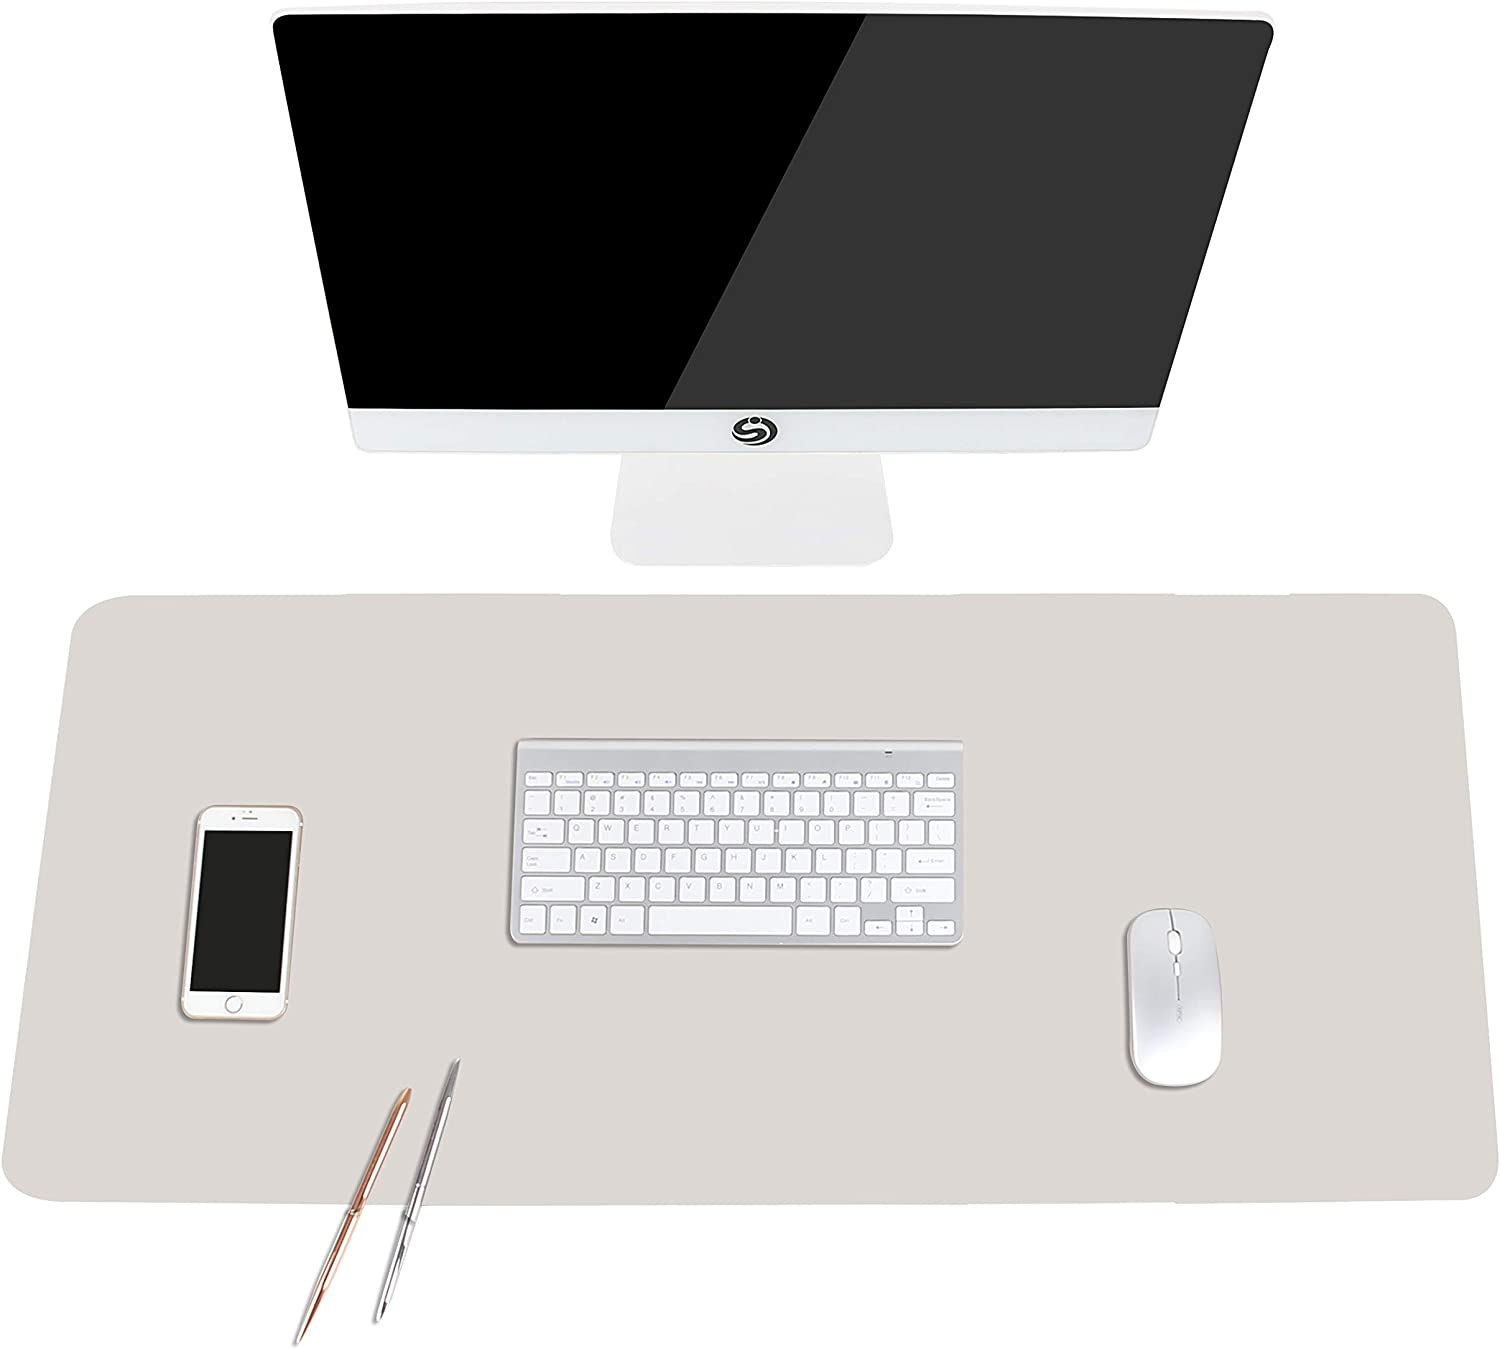 "Non-Slip Desk Pad, Waterproof PVC Leather Desk Table Protector, Ultra Thin Large Mouse Pad, Easy Clean Laptop Desk Writing Mat for Office Work/Home/Decor(Apricot Gray, 35.4"" x 17"")"